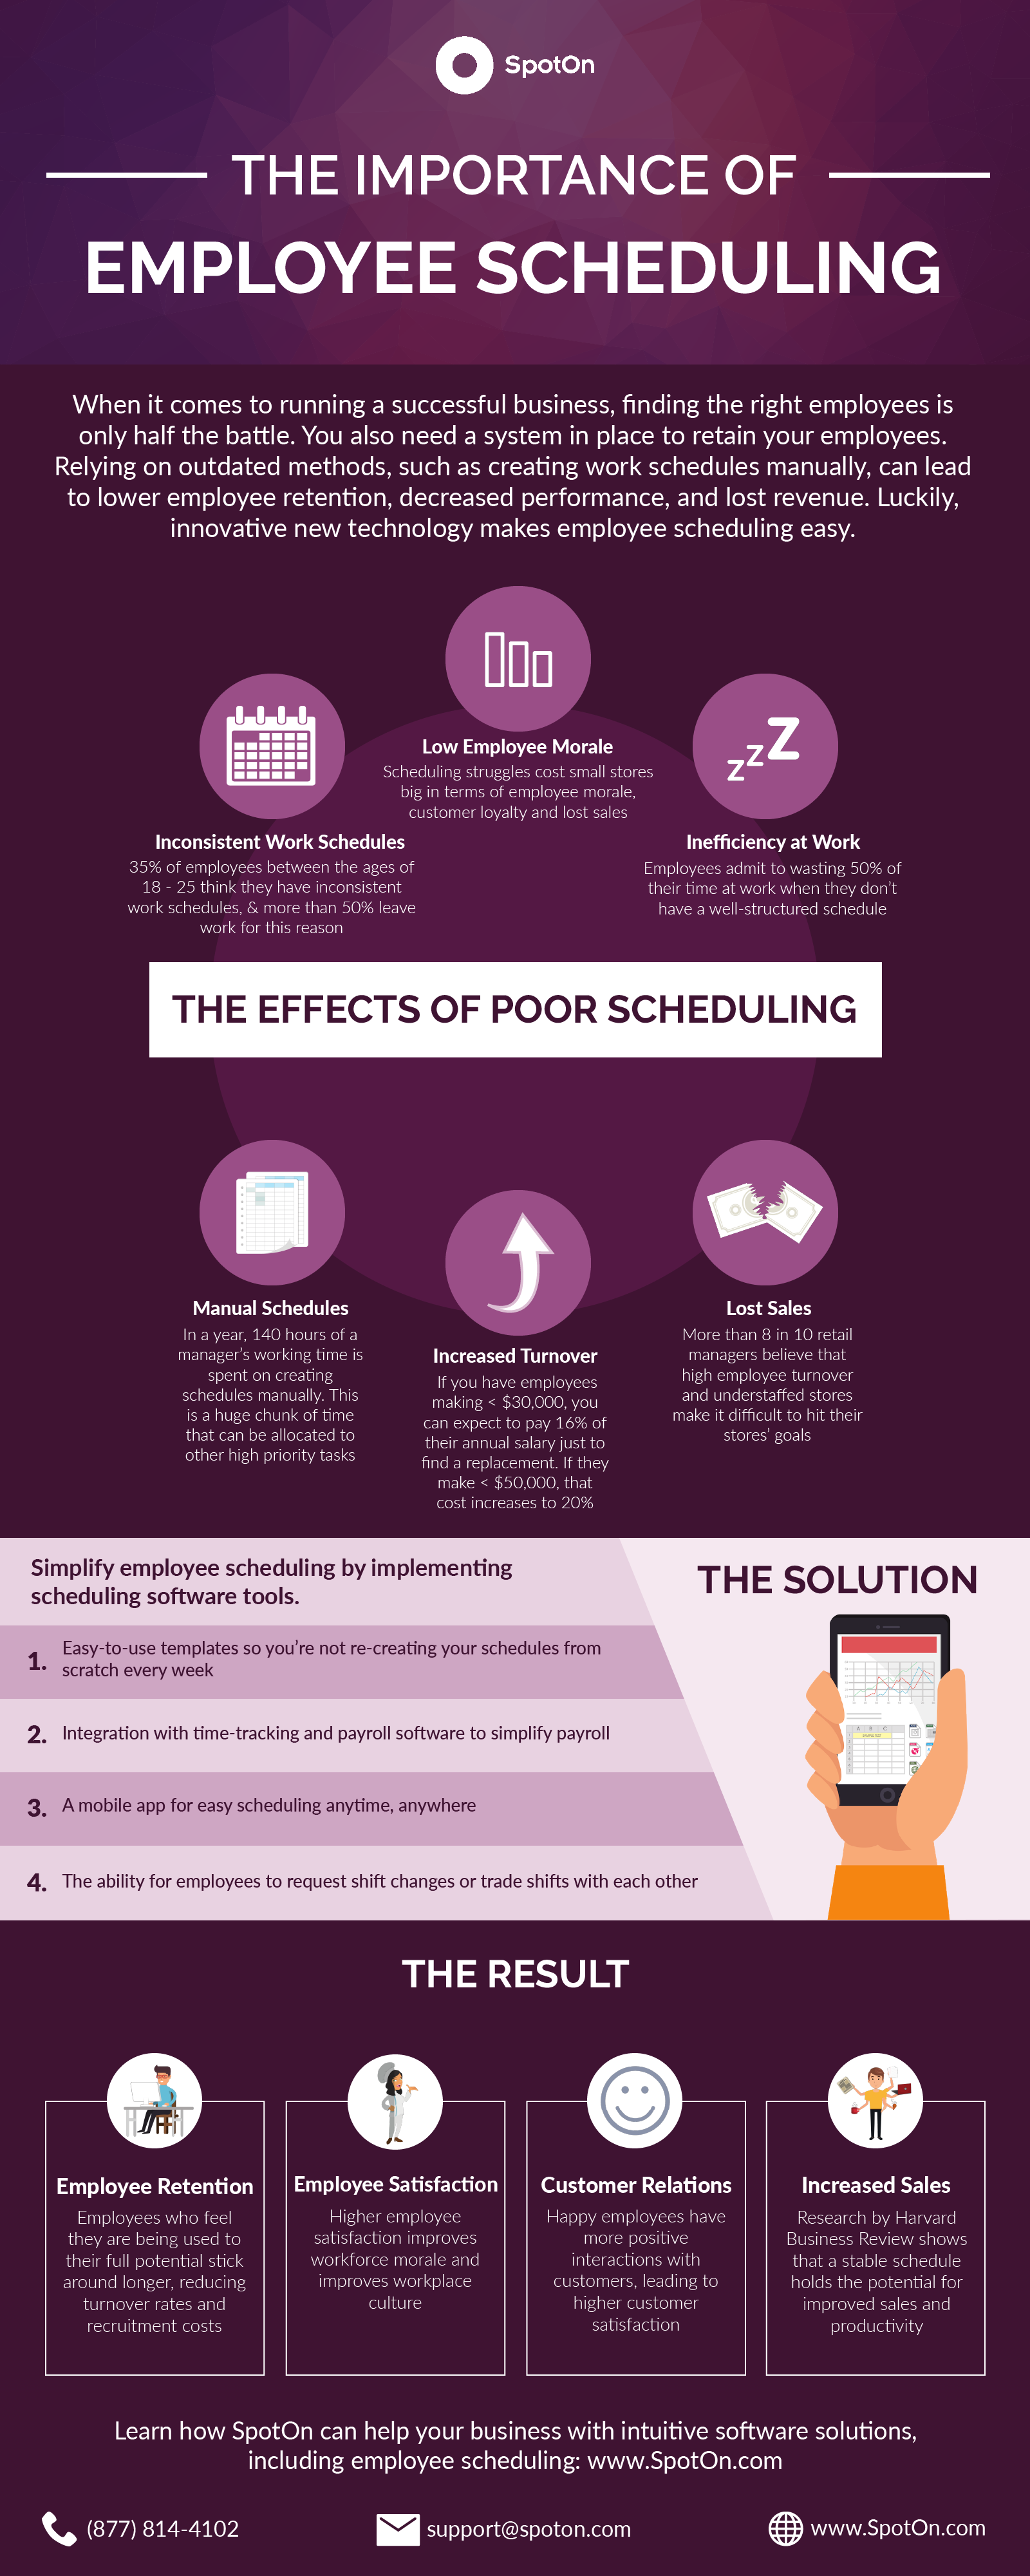 The Importance of Employee Scheduling (Infographic) | Modern Restaurant Management | The Business of Eating & Restaurant Management News